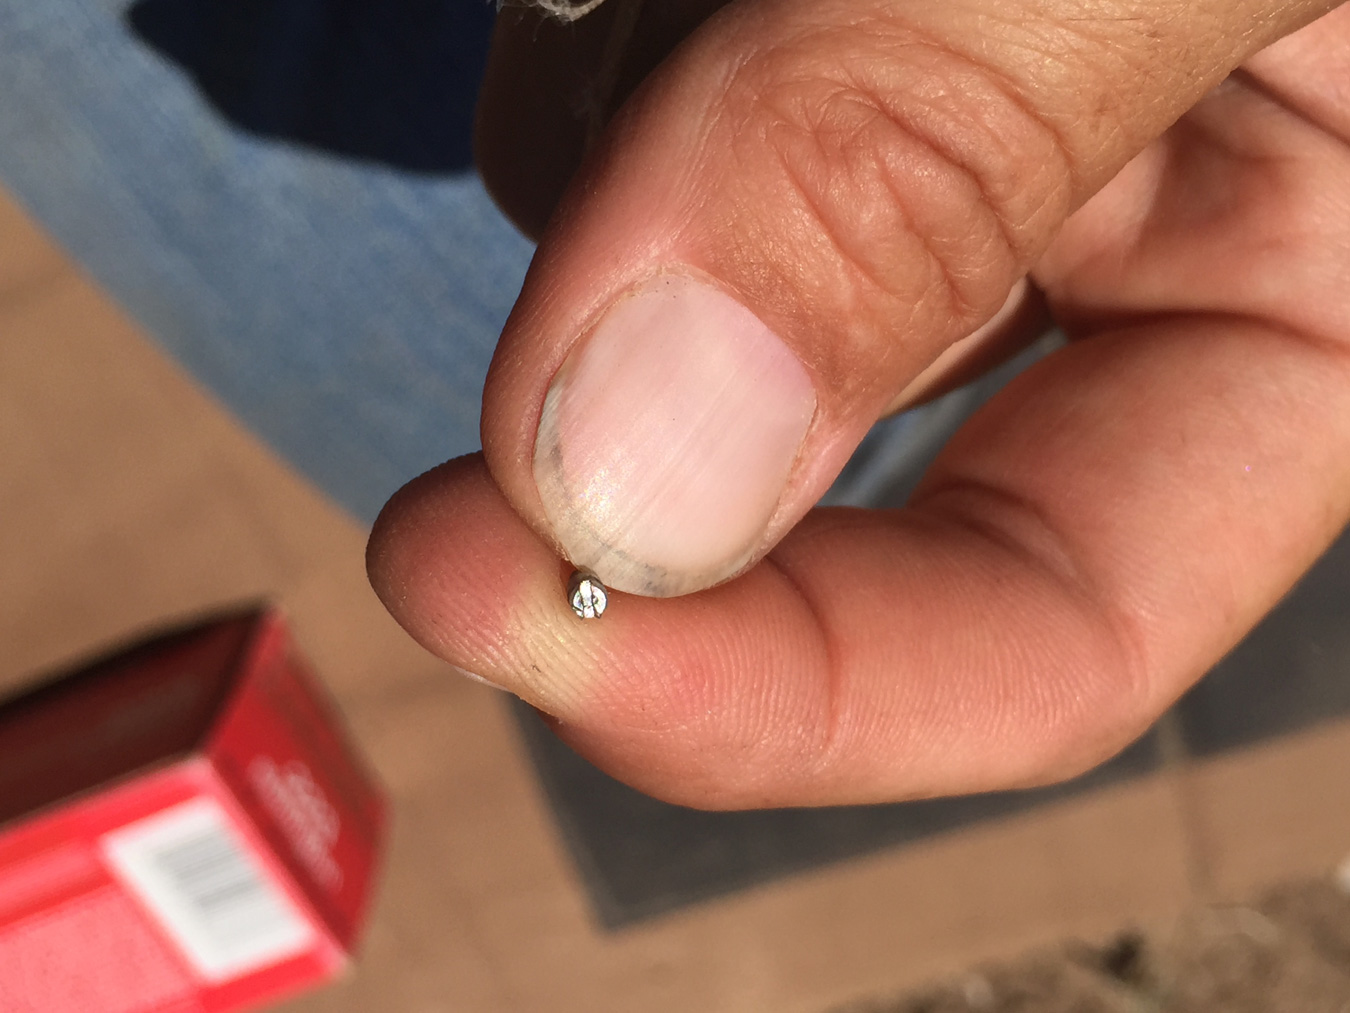 Holding a very small riflescope screw